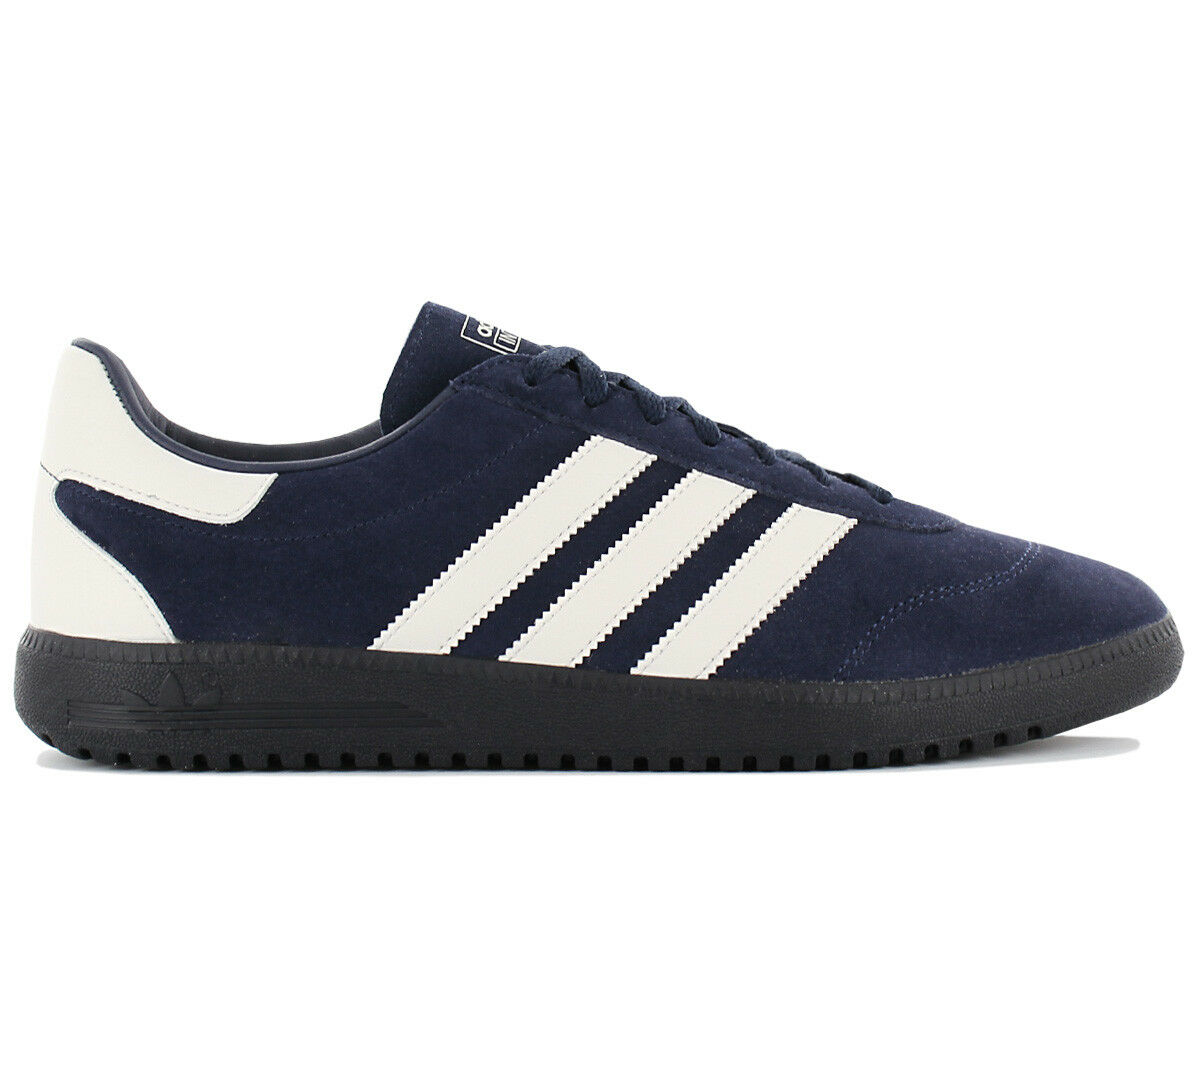 Adidas Originals Intack Special Men's Sneakers shoes Leather bluee Trainers